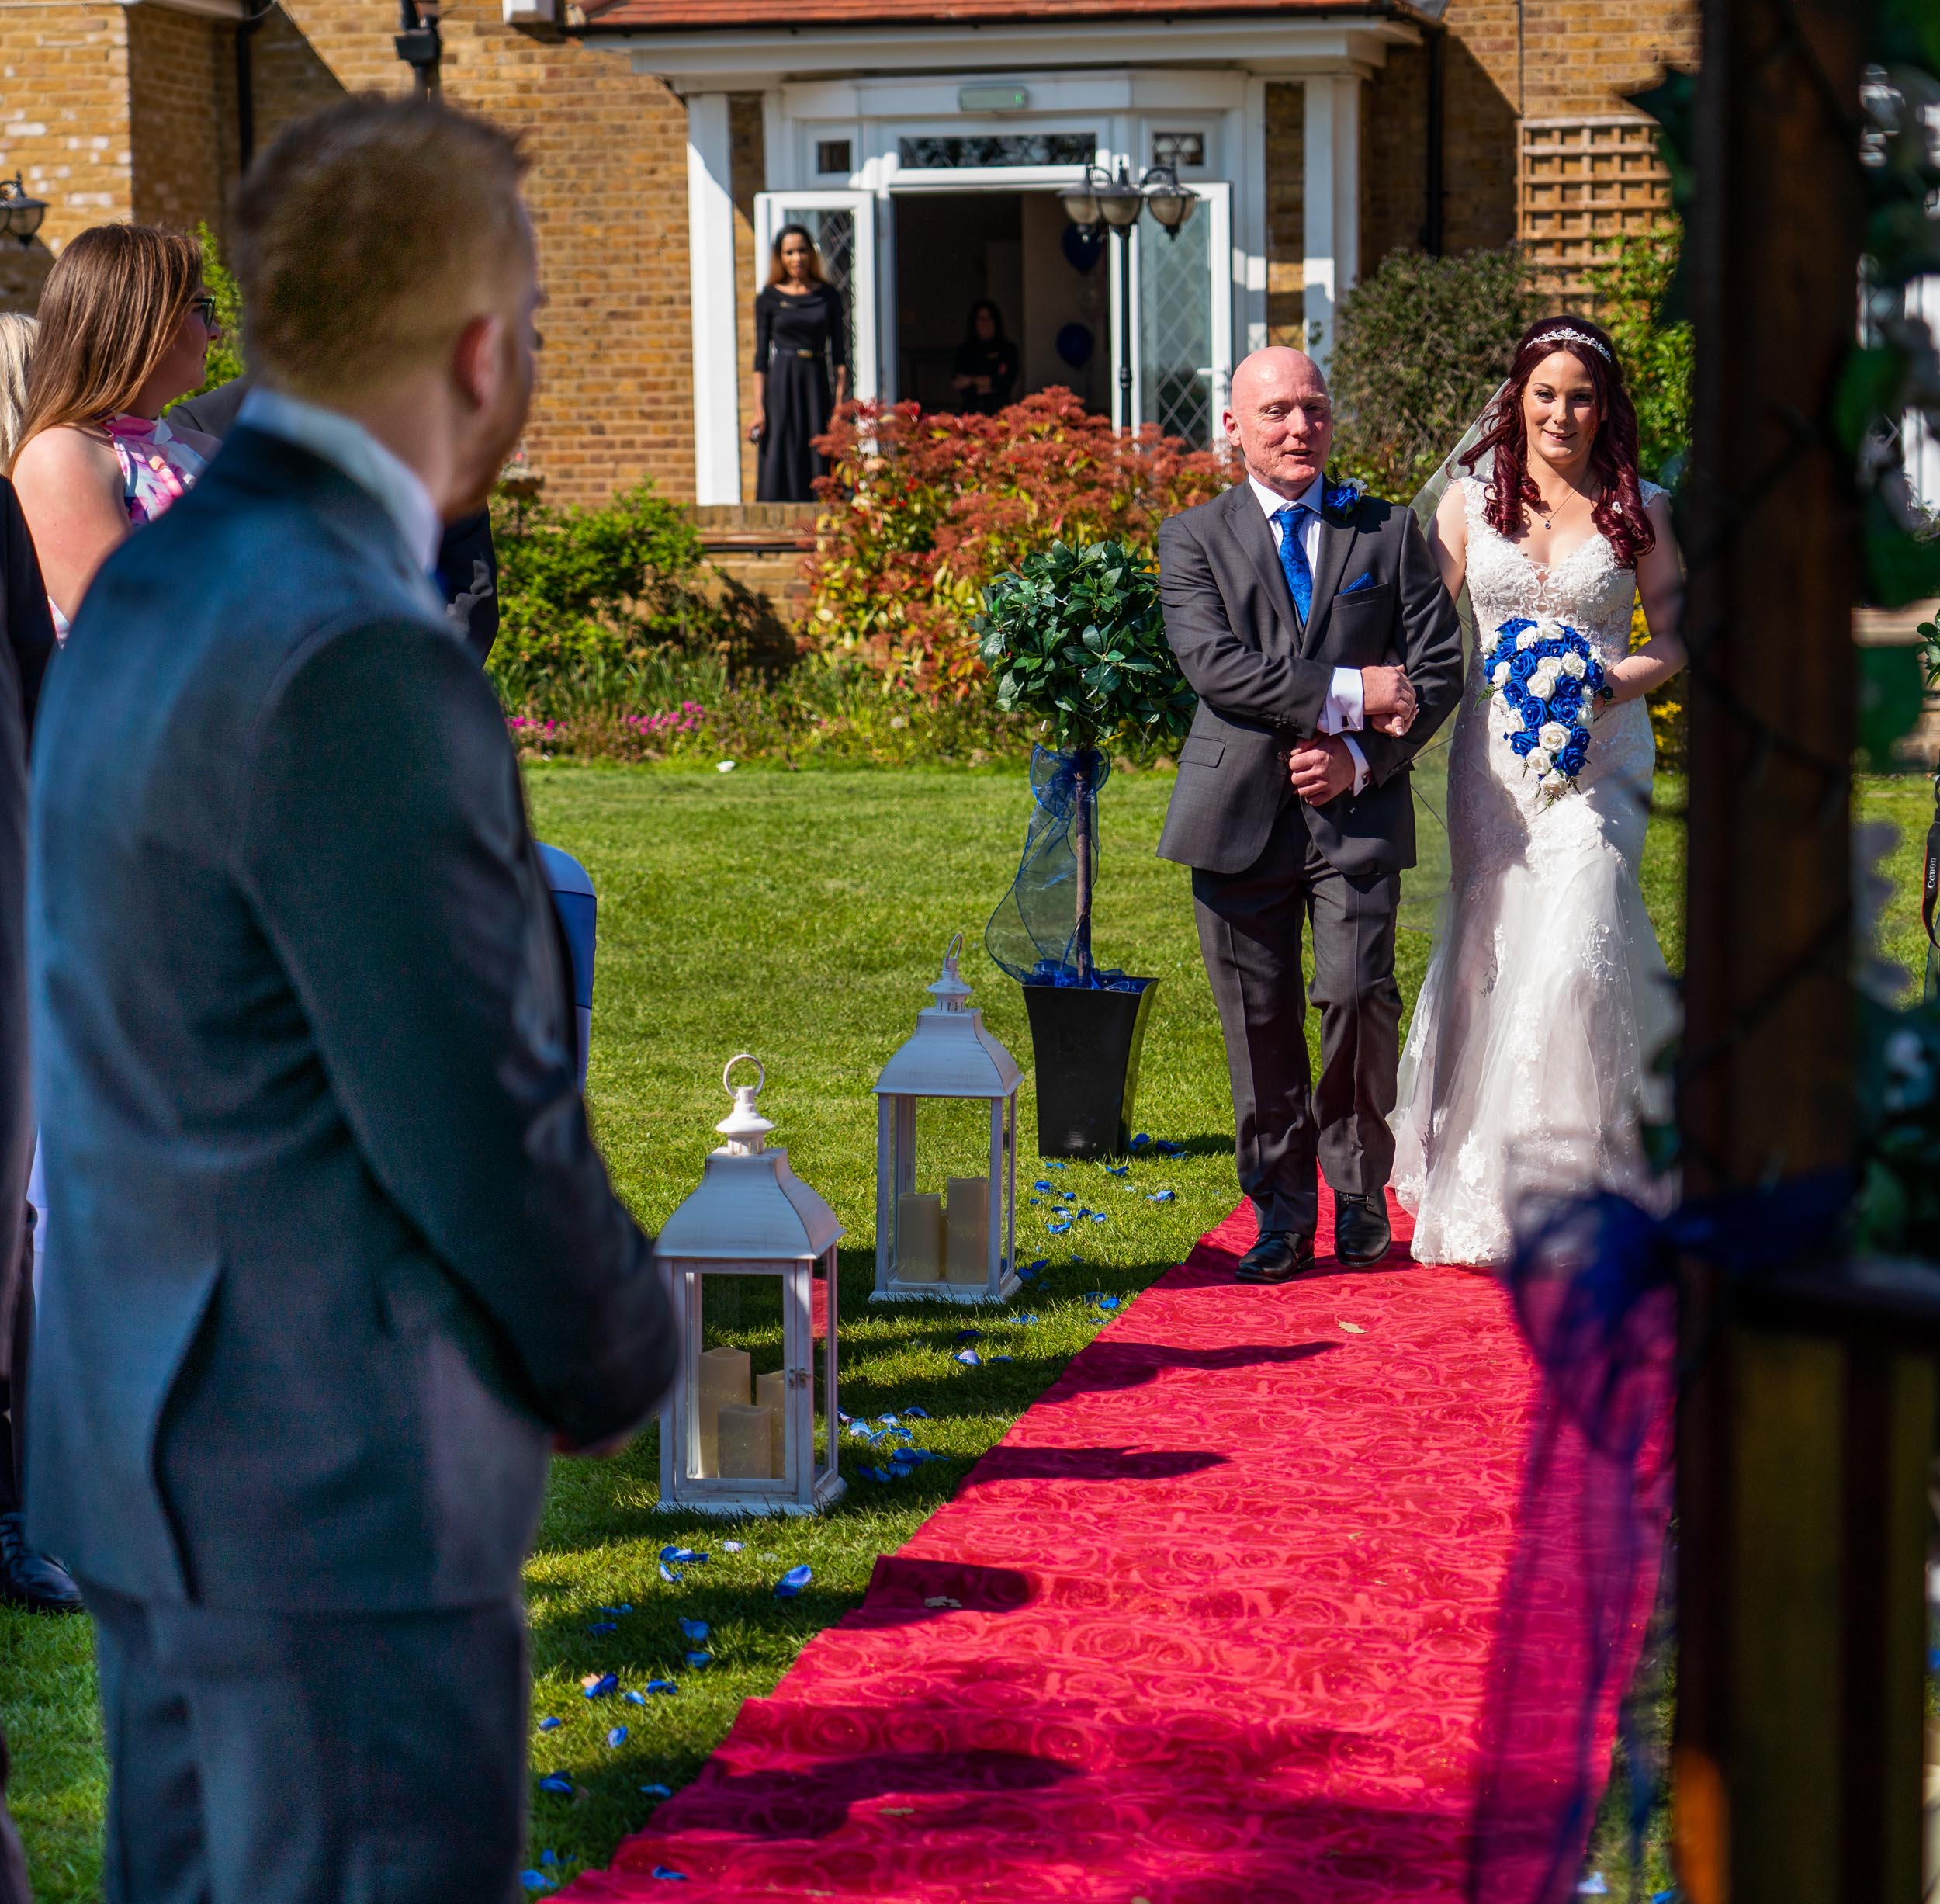 190420-Wedding-Ceremony-outdoors-The-Old-Rectory-120.jpg